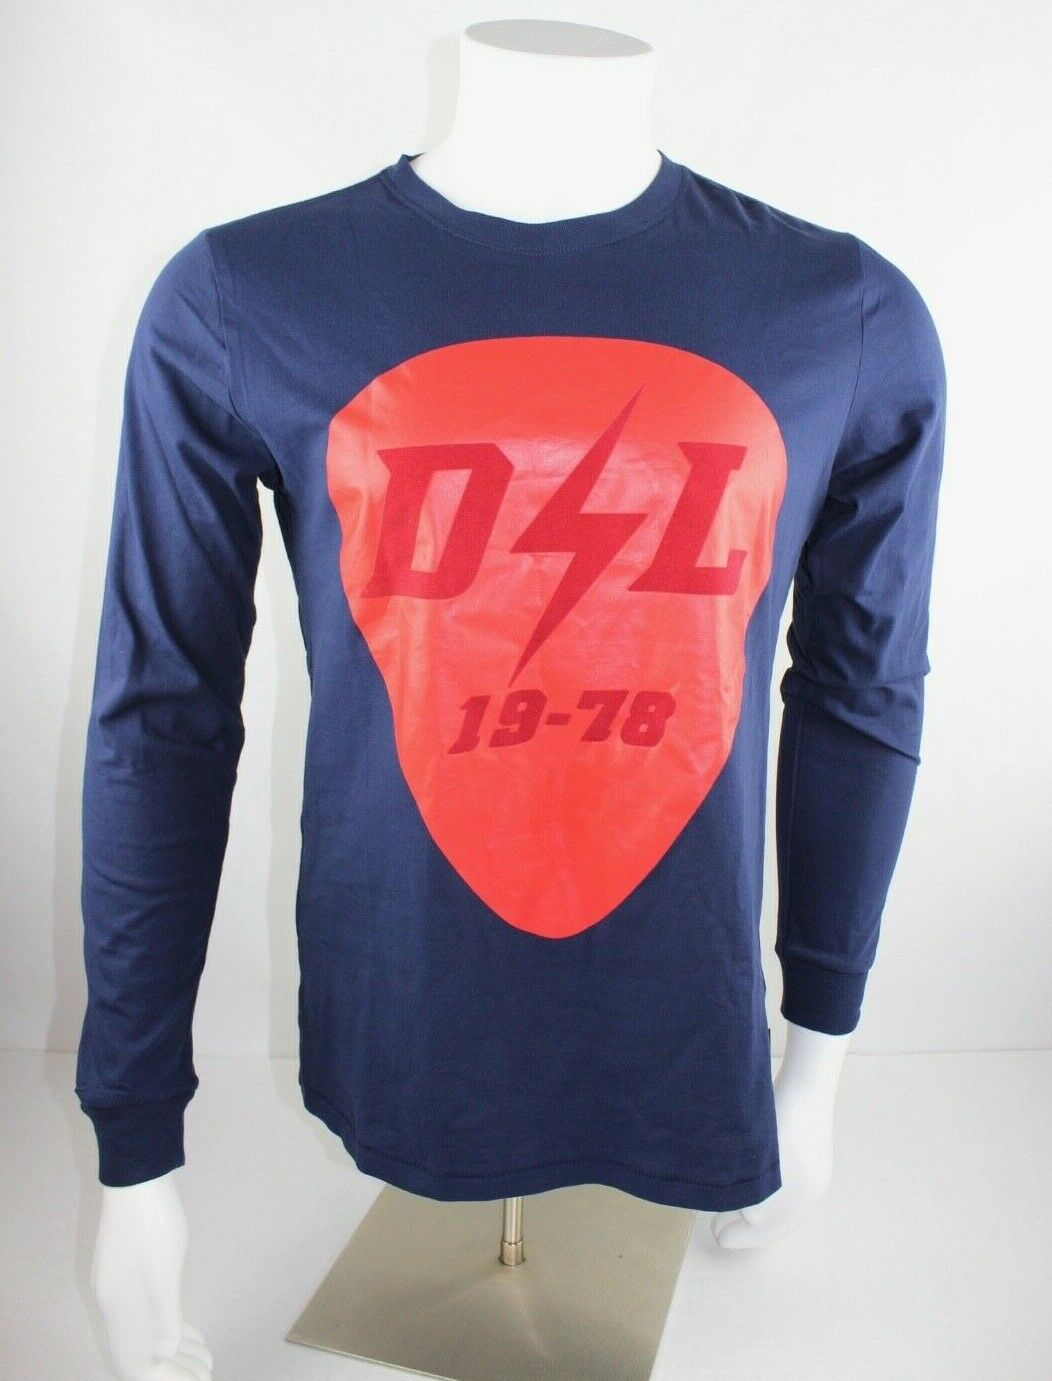 c6df4228b4 Diesel Graphic Long Sleeve Cotton Tee in Peacoat bluee Mens Size M NWT